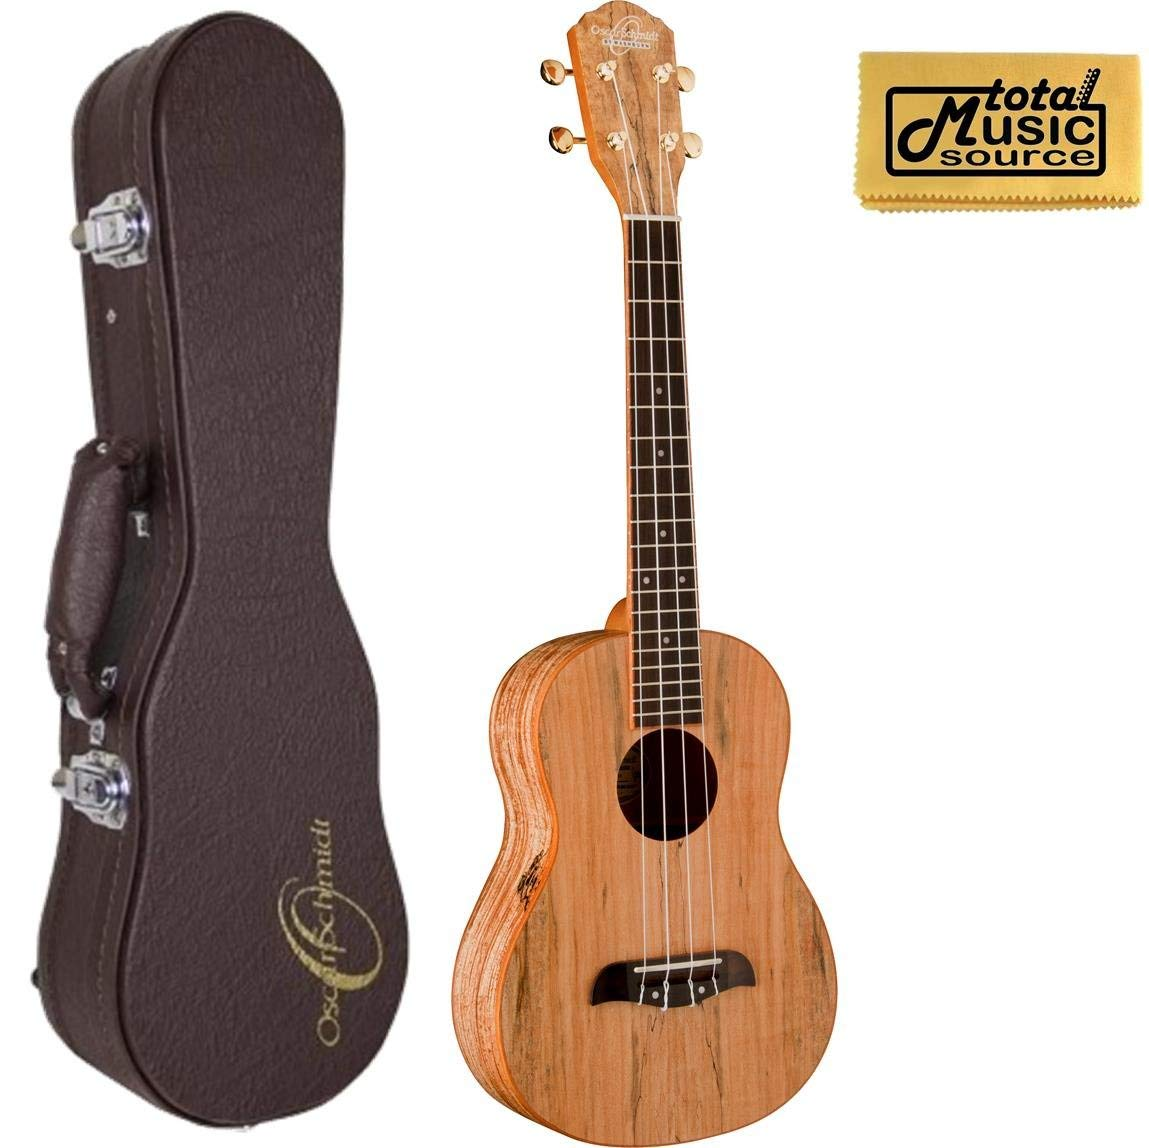 Oscar Schmidt OU8T Tenor Ukulele, Spalted Maple Top, Back and Sides,w/Hard Case & PC, OU8T UC4